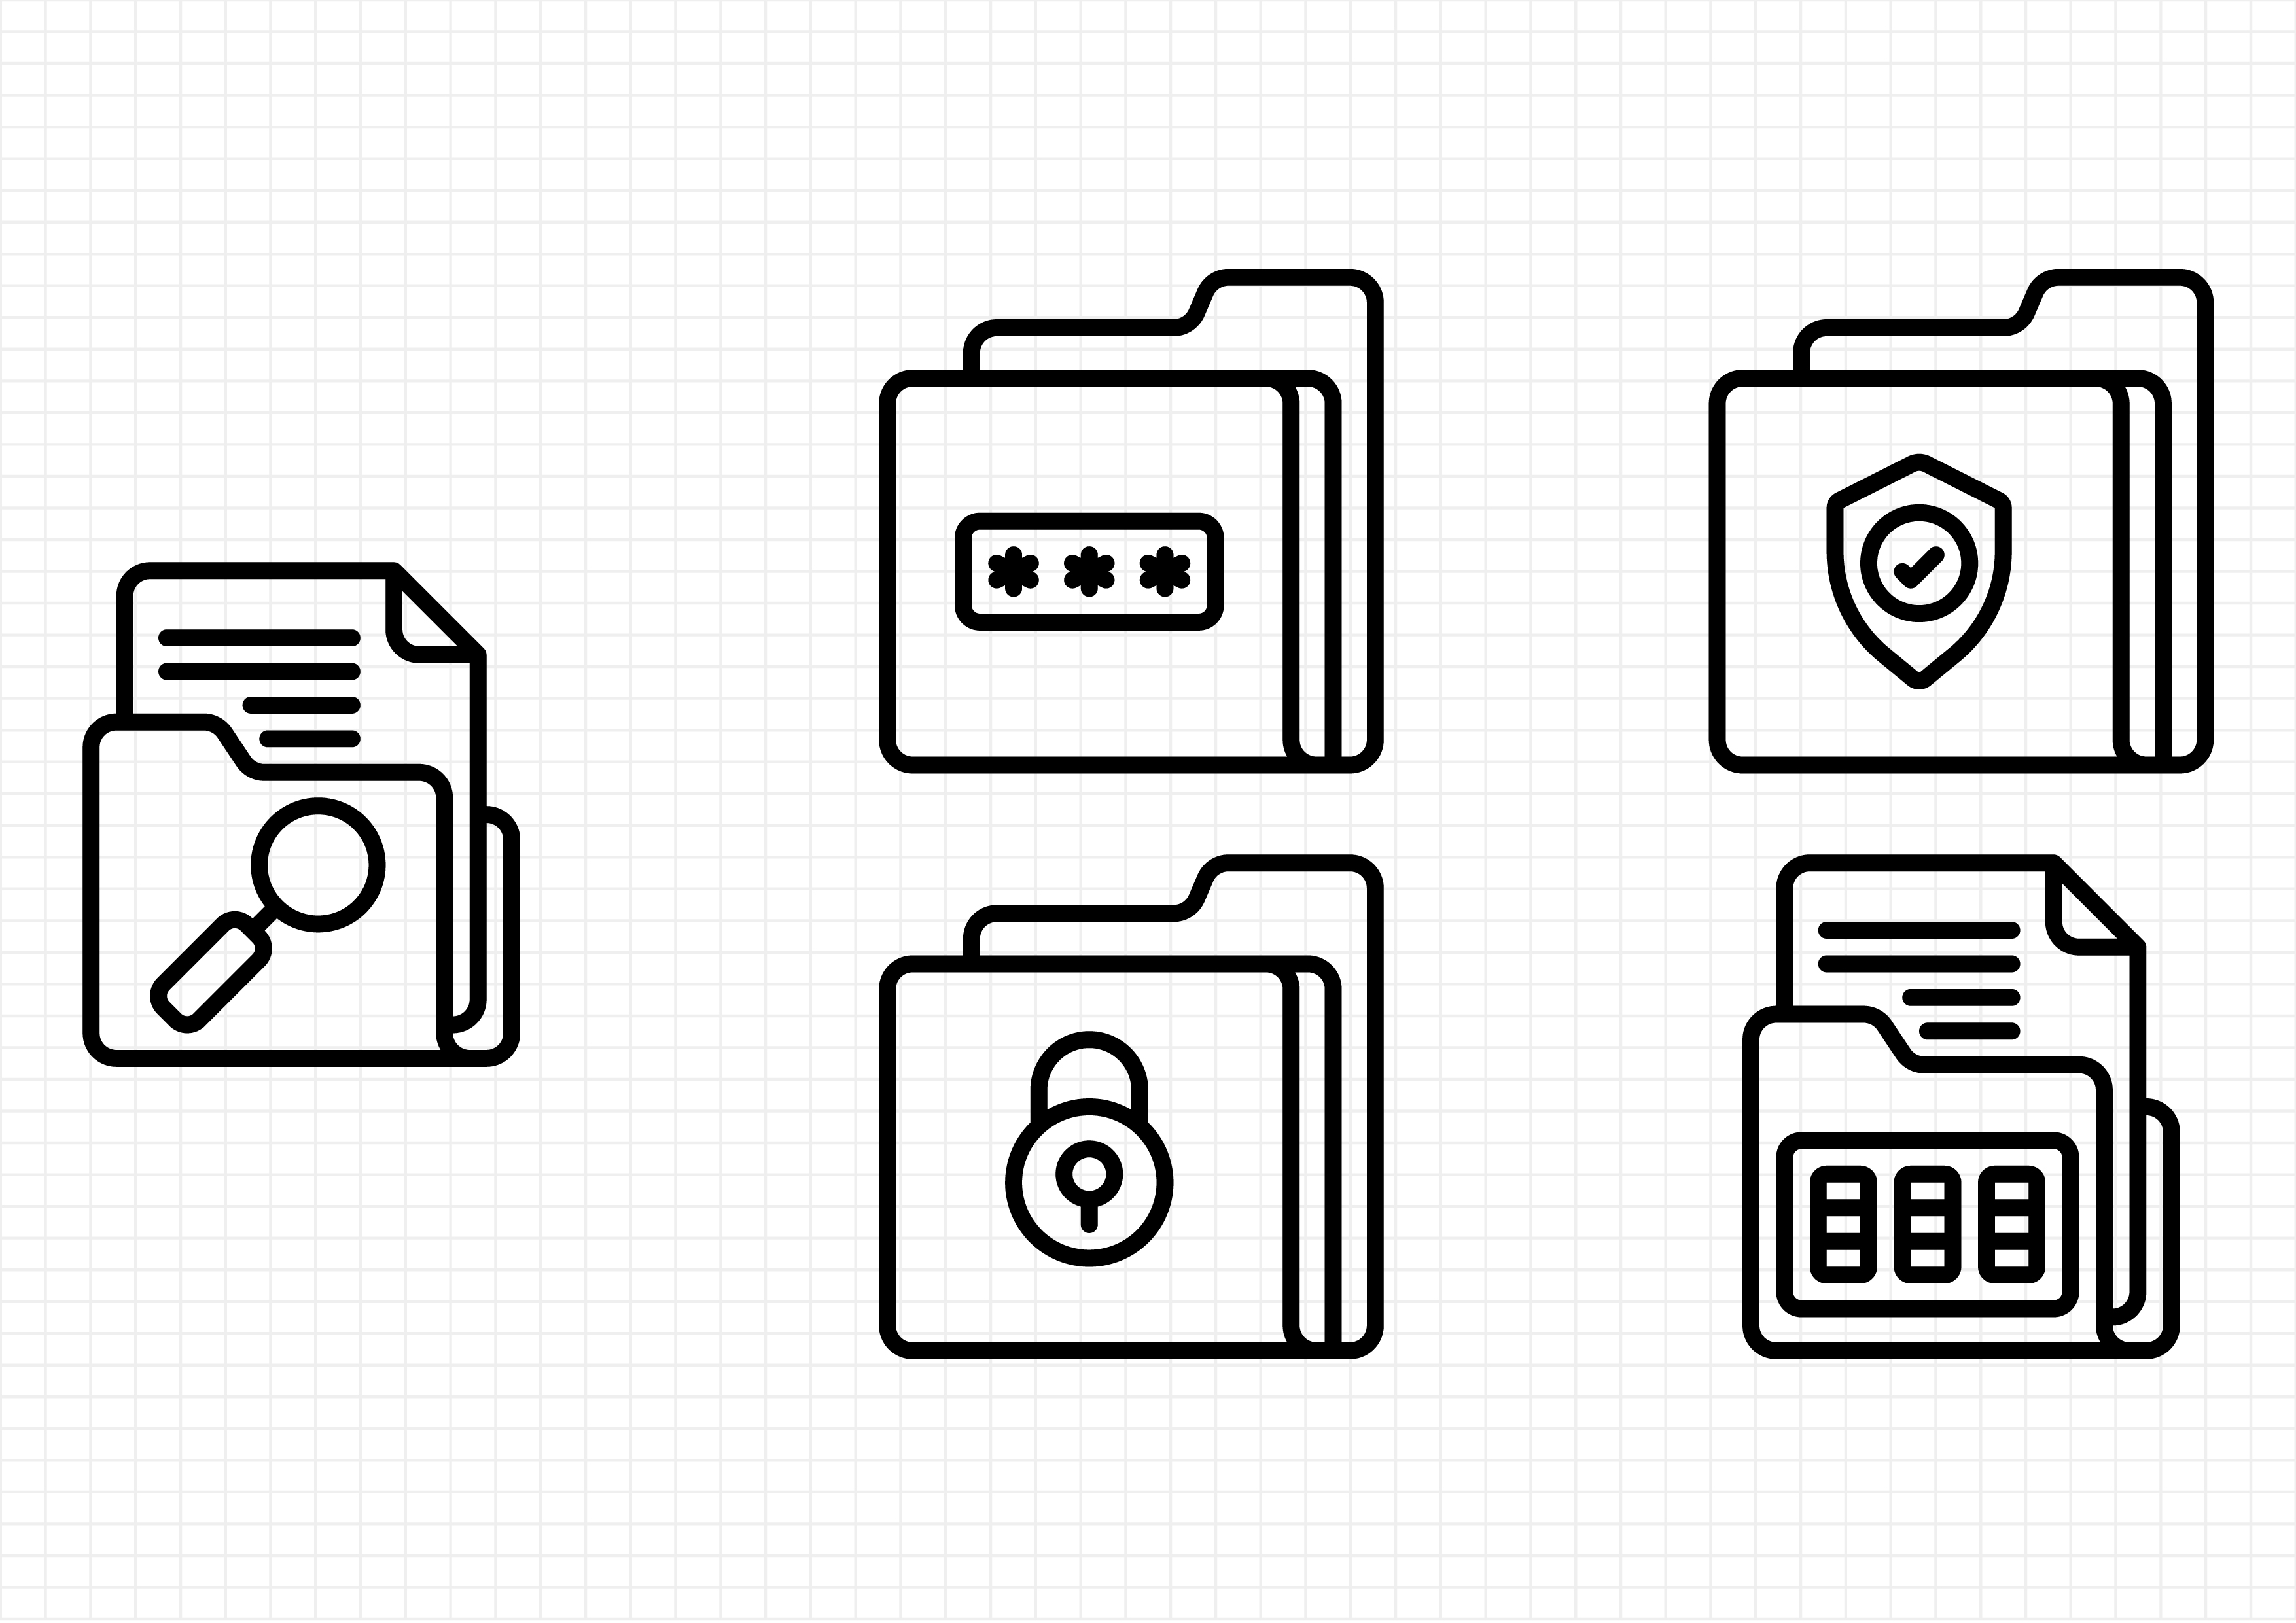 Download Free Data Security Graphic By Beryladamayu Creative Fabrica for Cricut Explore, Silhouette and other cutting machines.